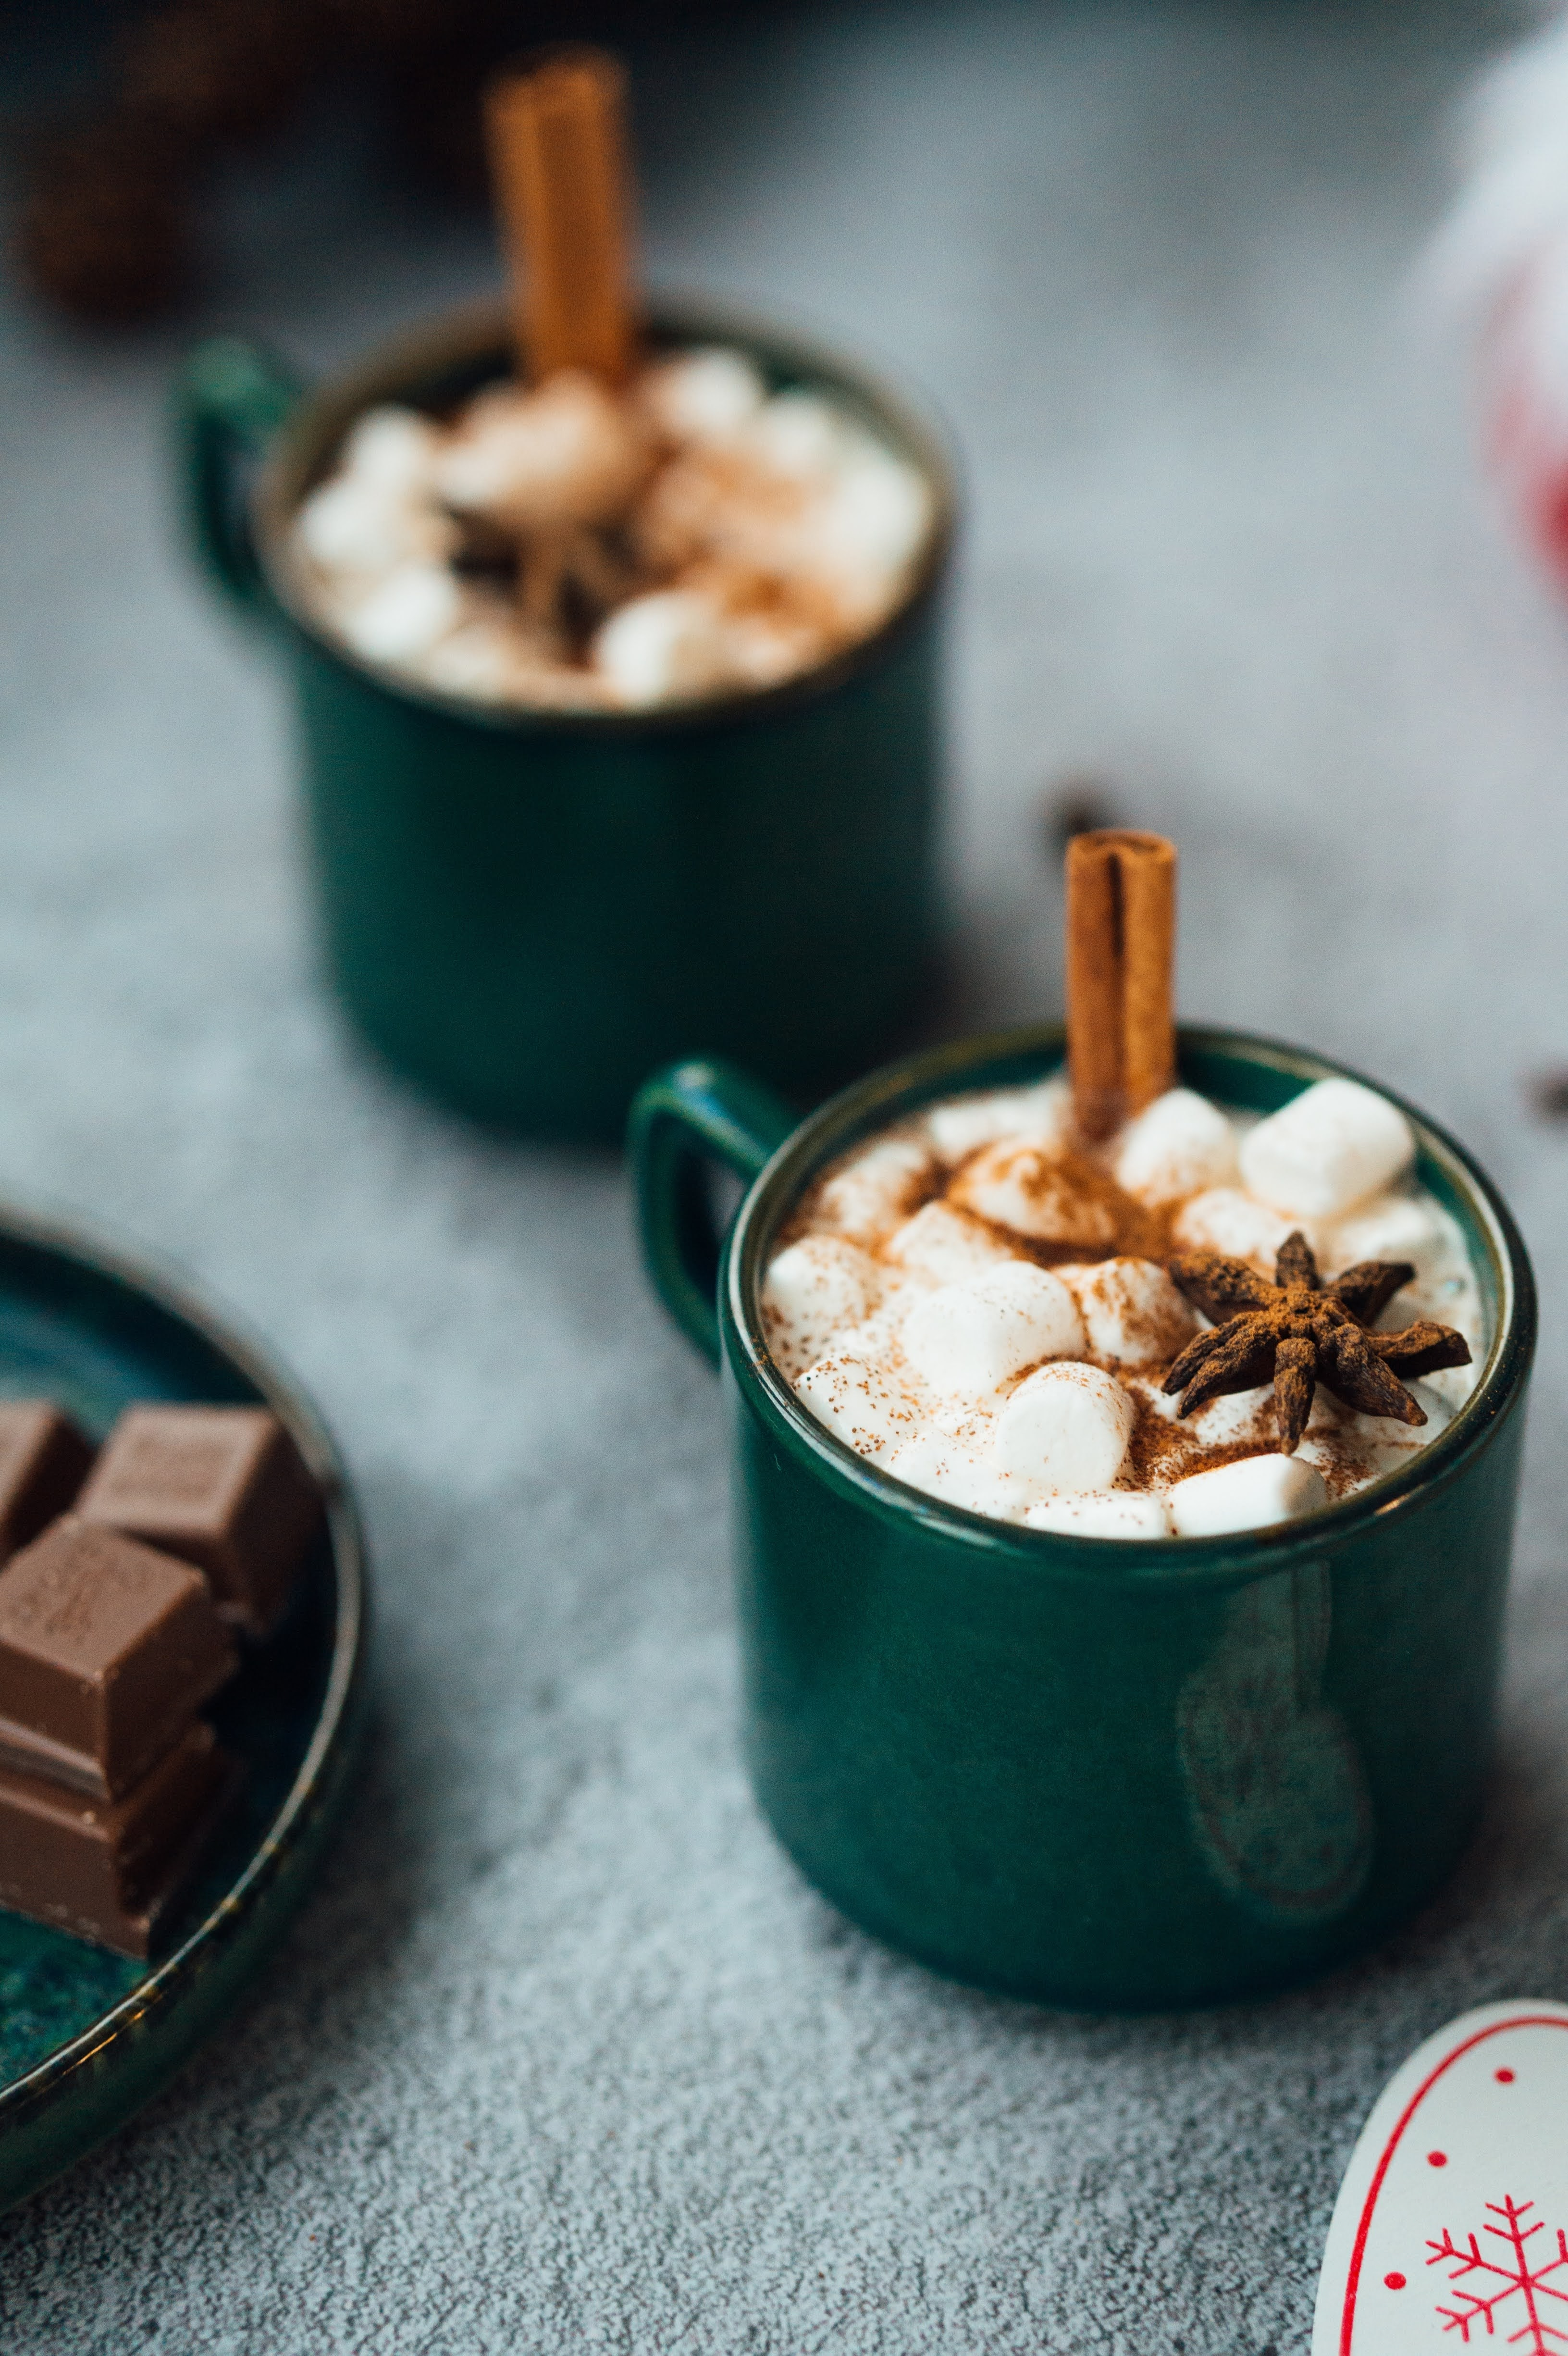 Mugs of Hot Chocolate | Photo by Hanna Balan via Unsplash